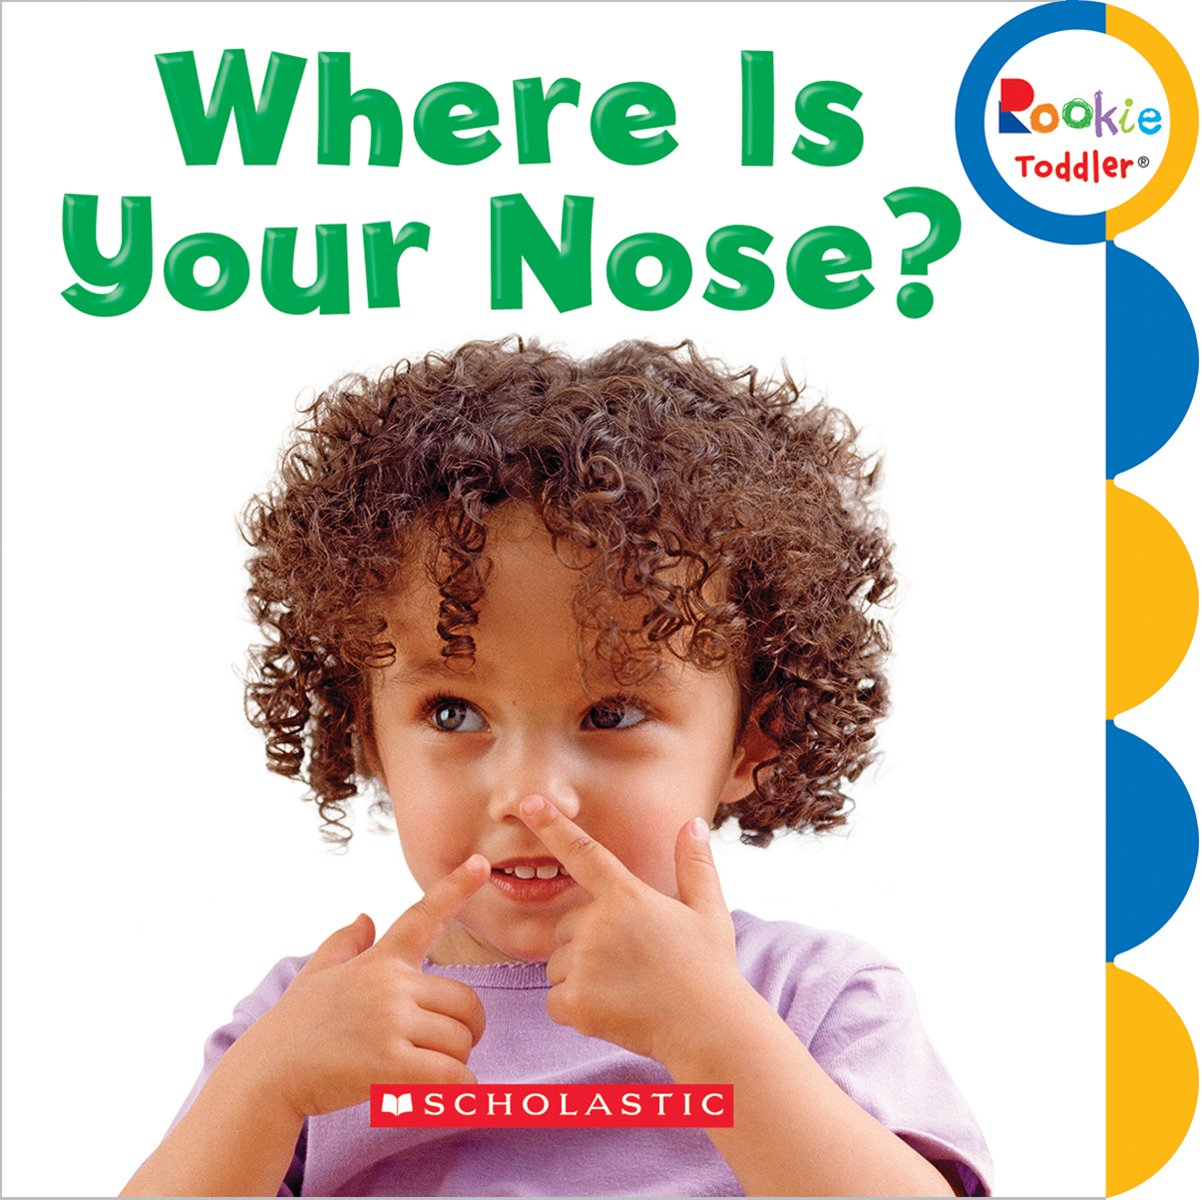 Where Is Your Nose? (Rookie Toddler)